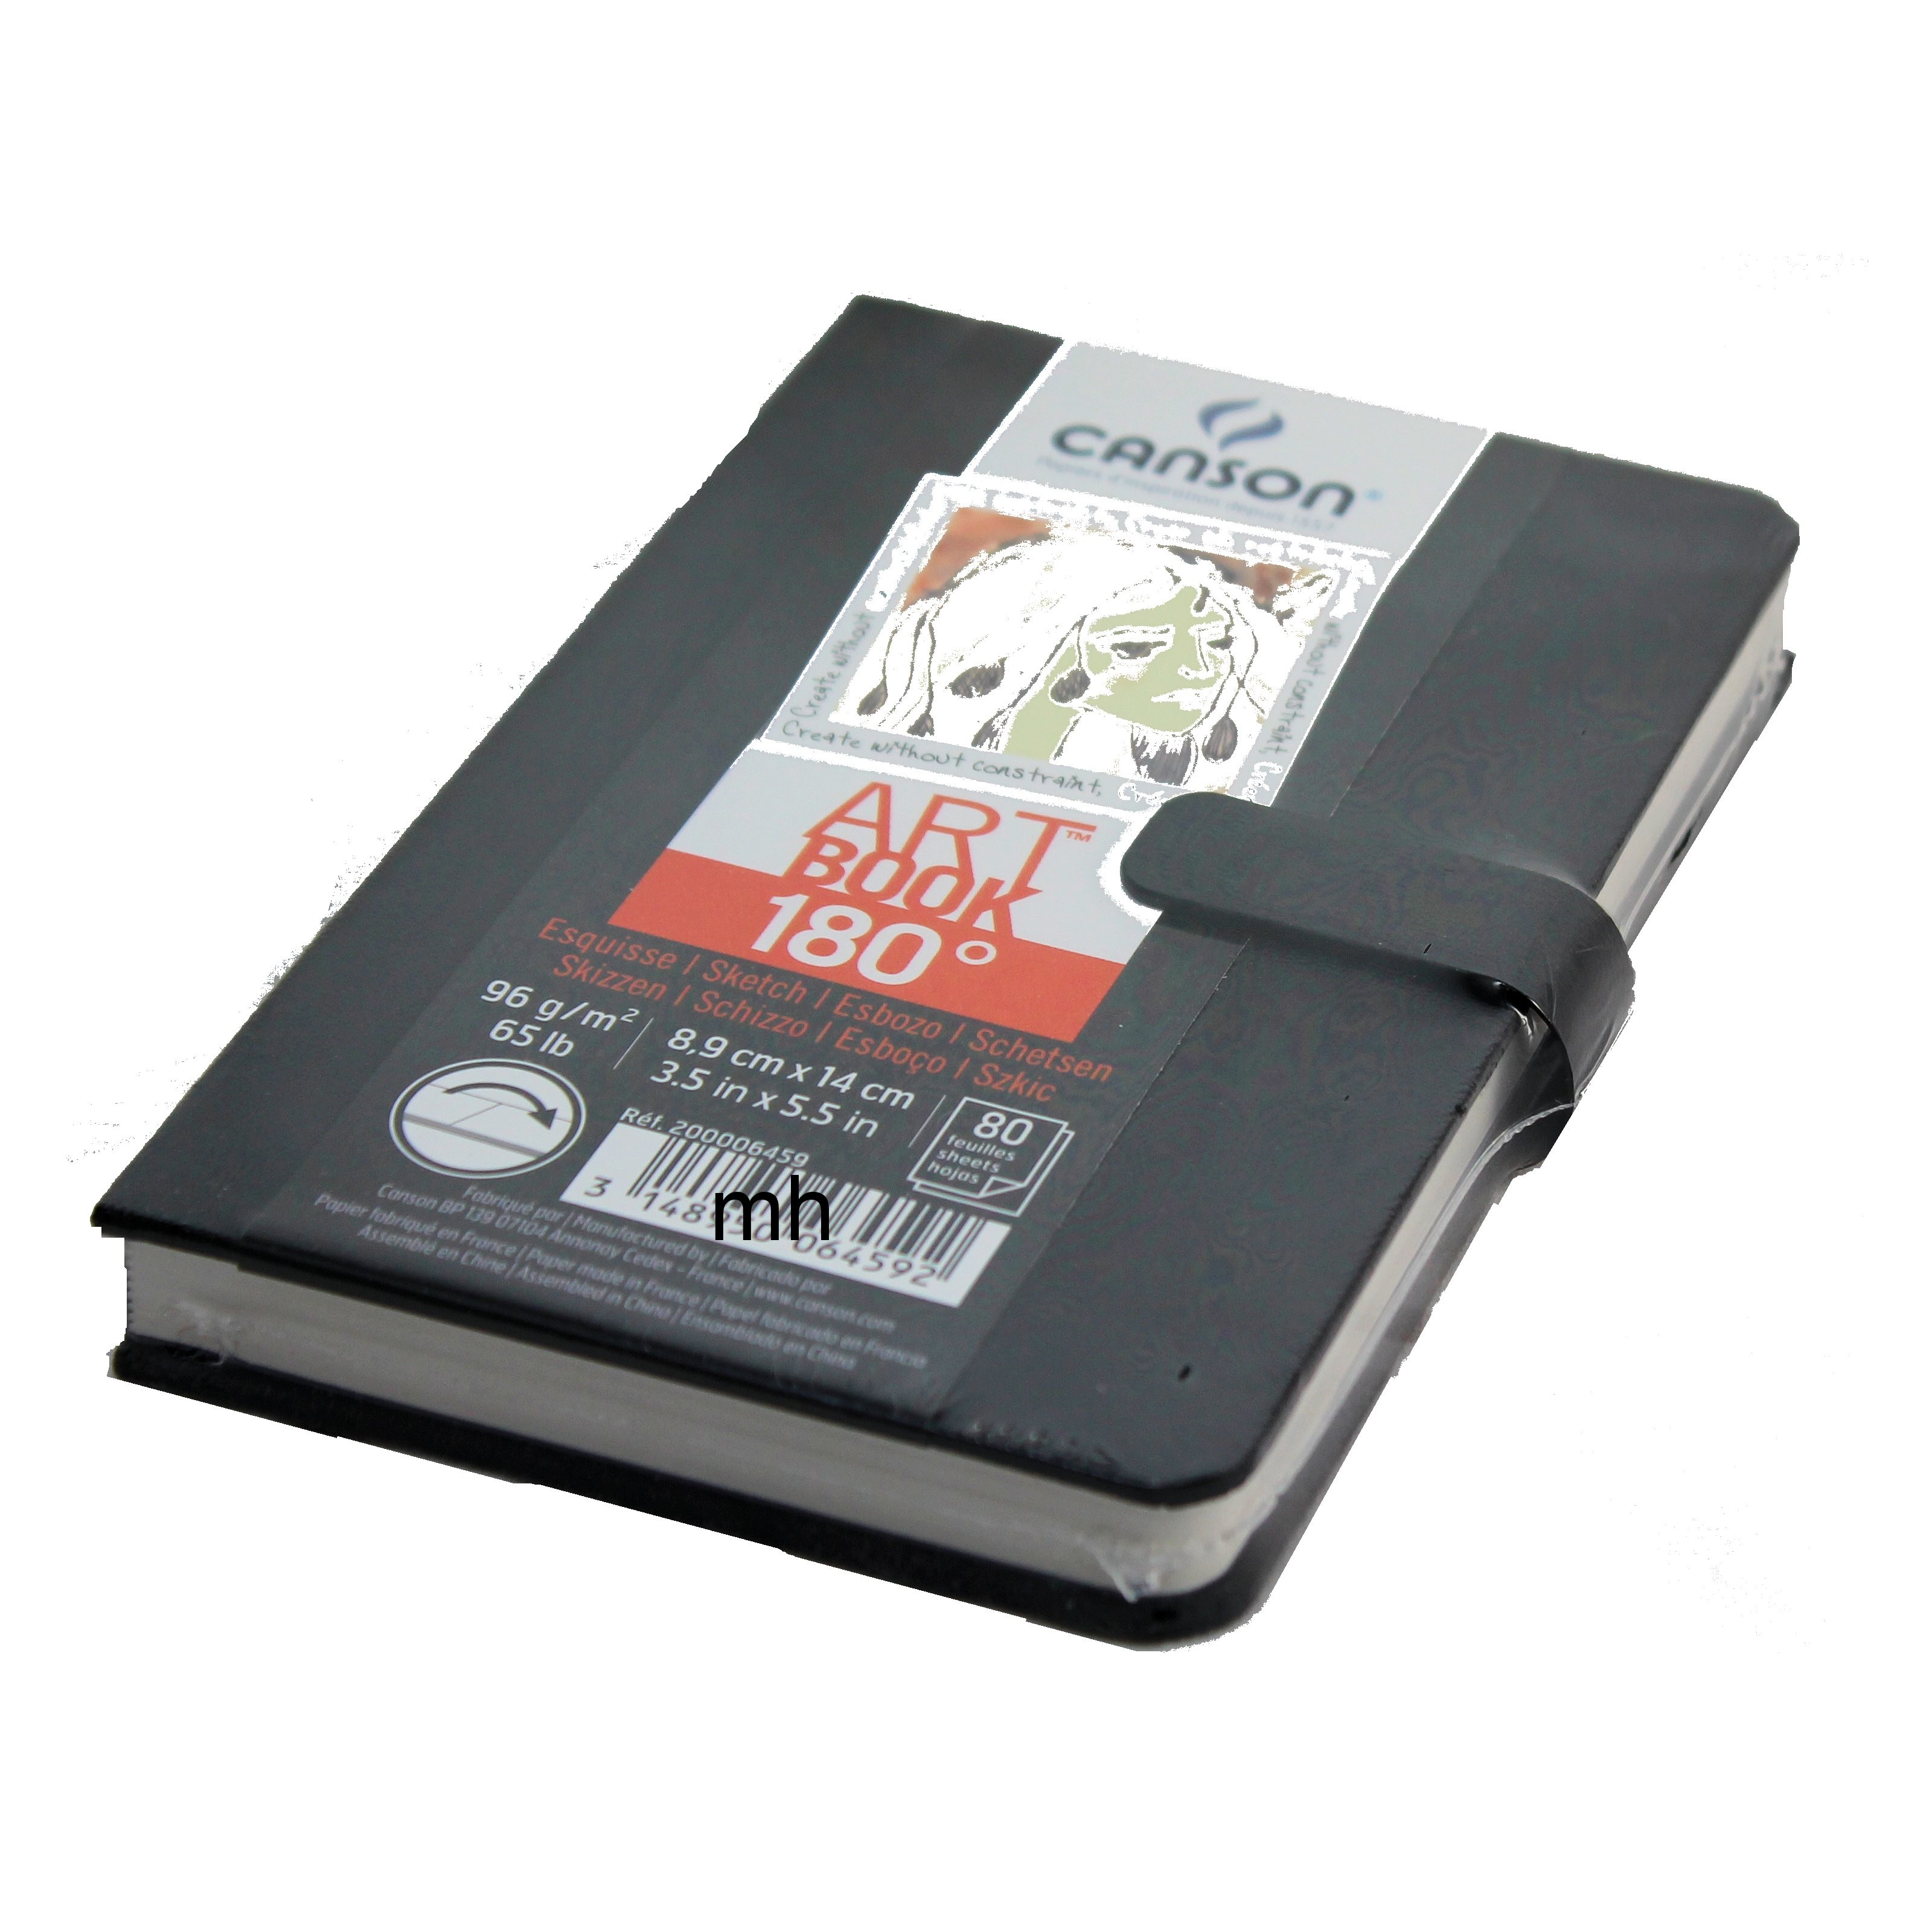 canson 180 sketchbooks 96gsm